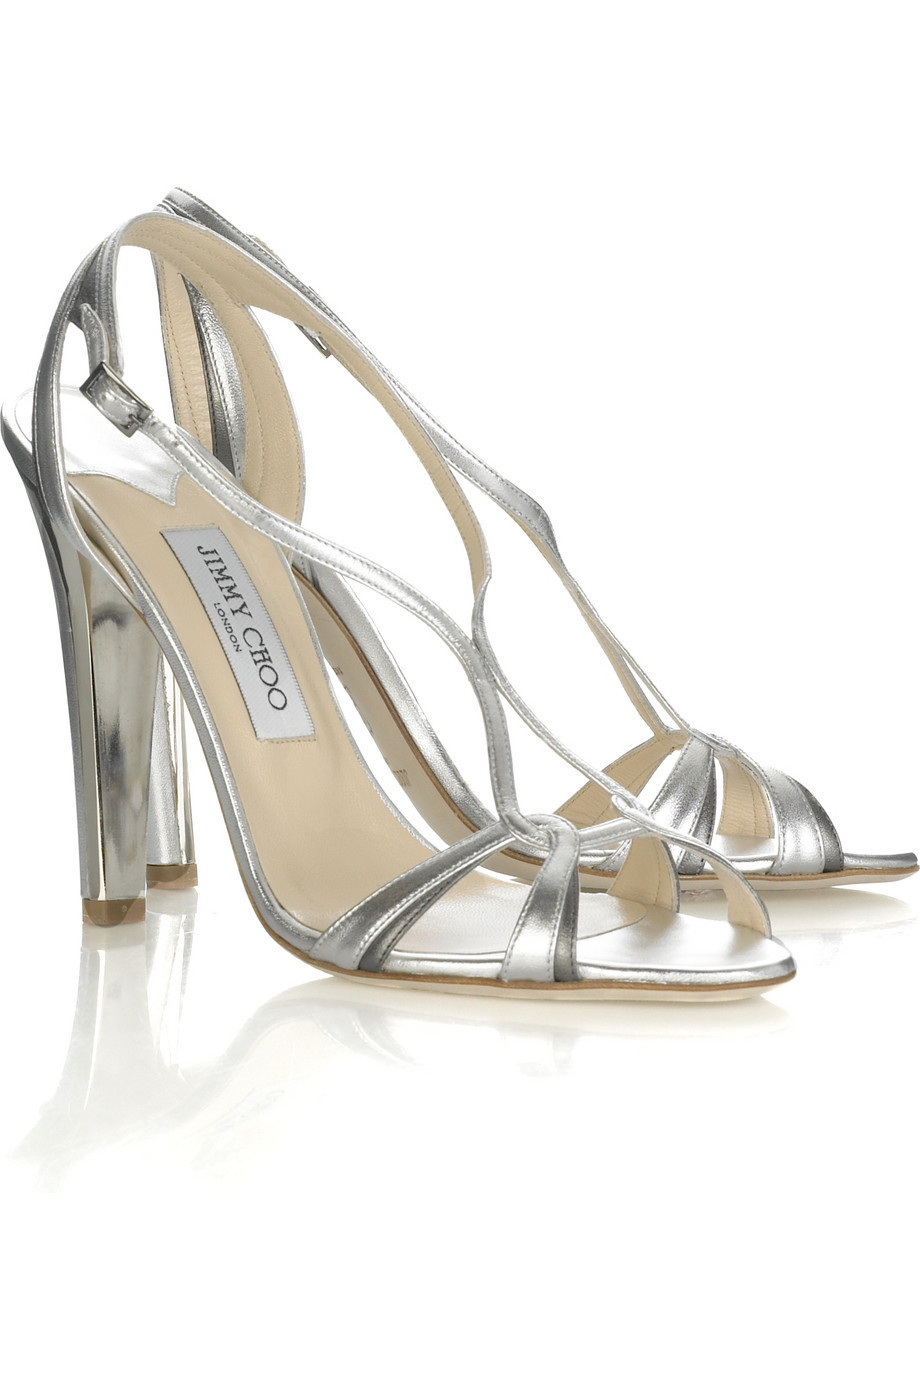 Jimmy Choo Leo metallic sandals | NET-A-PORTER.COM from net-a-porter.com